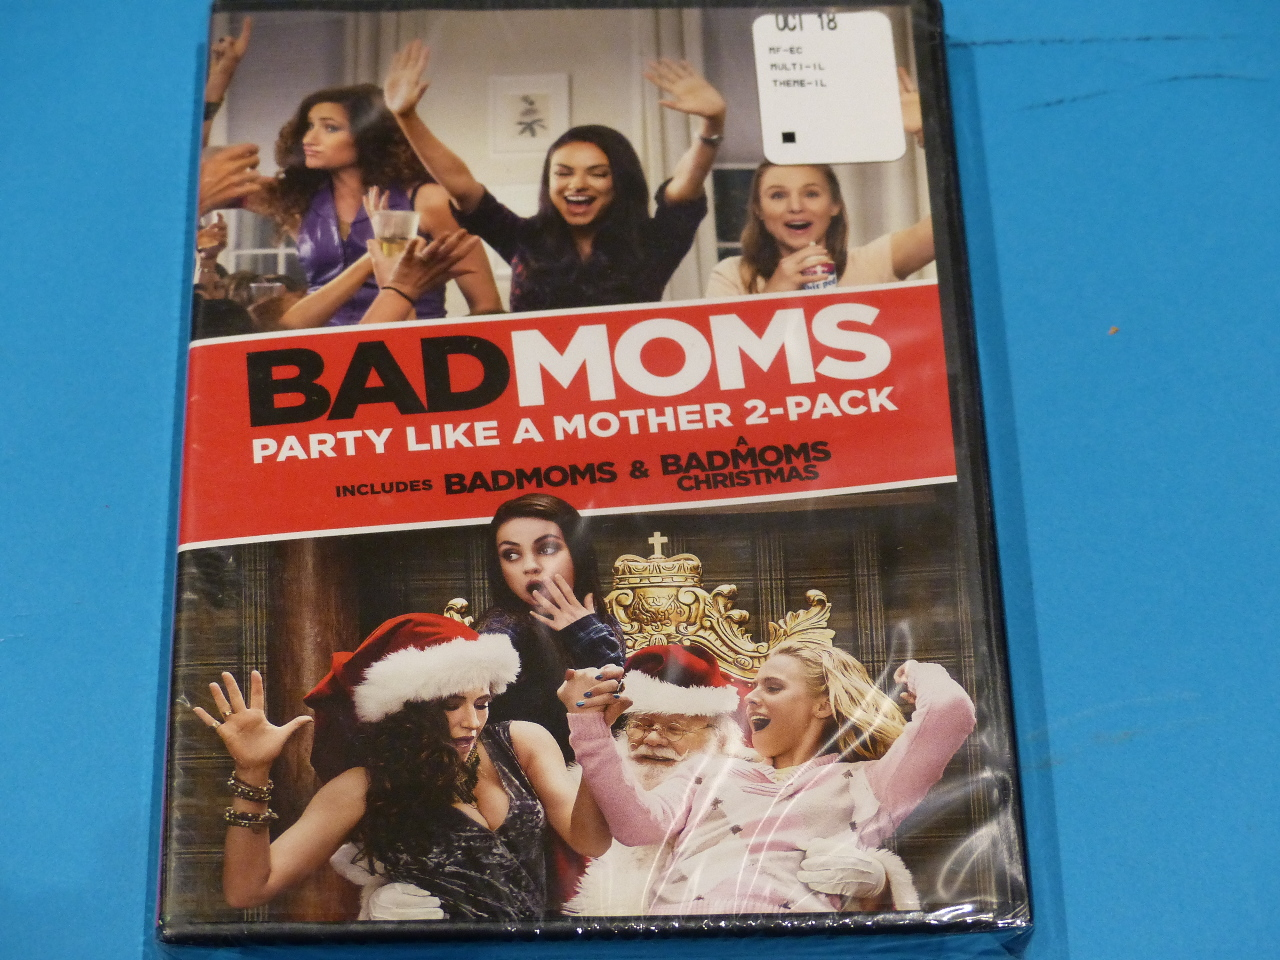 Bad Moms Christmas Dvd Release Date.Bad Moms Party Like A Mother 2 Pack Badmoms A Badmoms Christmas Dvd New